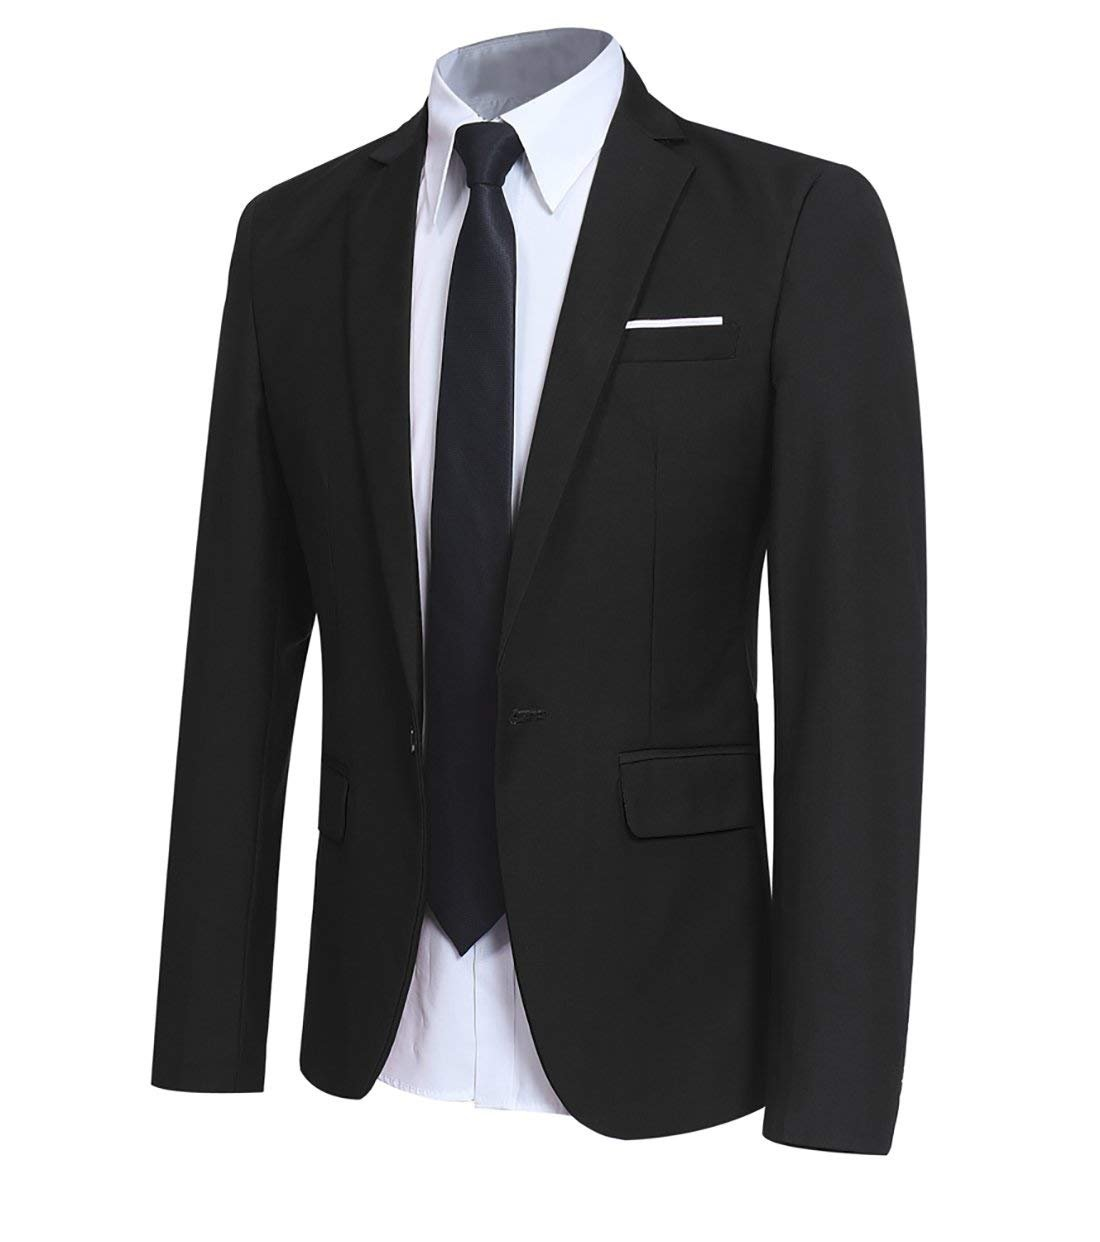 Men' Slim Fit One Button Blazer Jacket Casual/Party Sport Coat Black